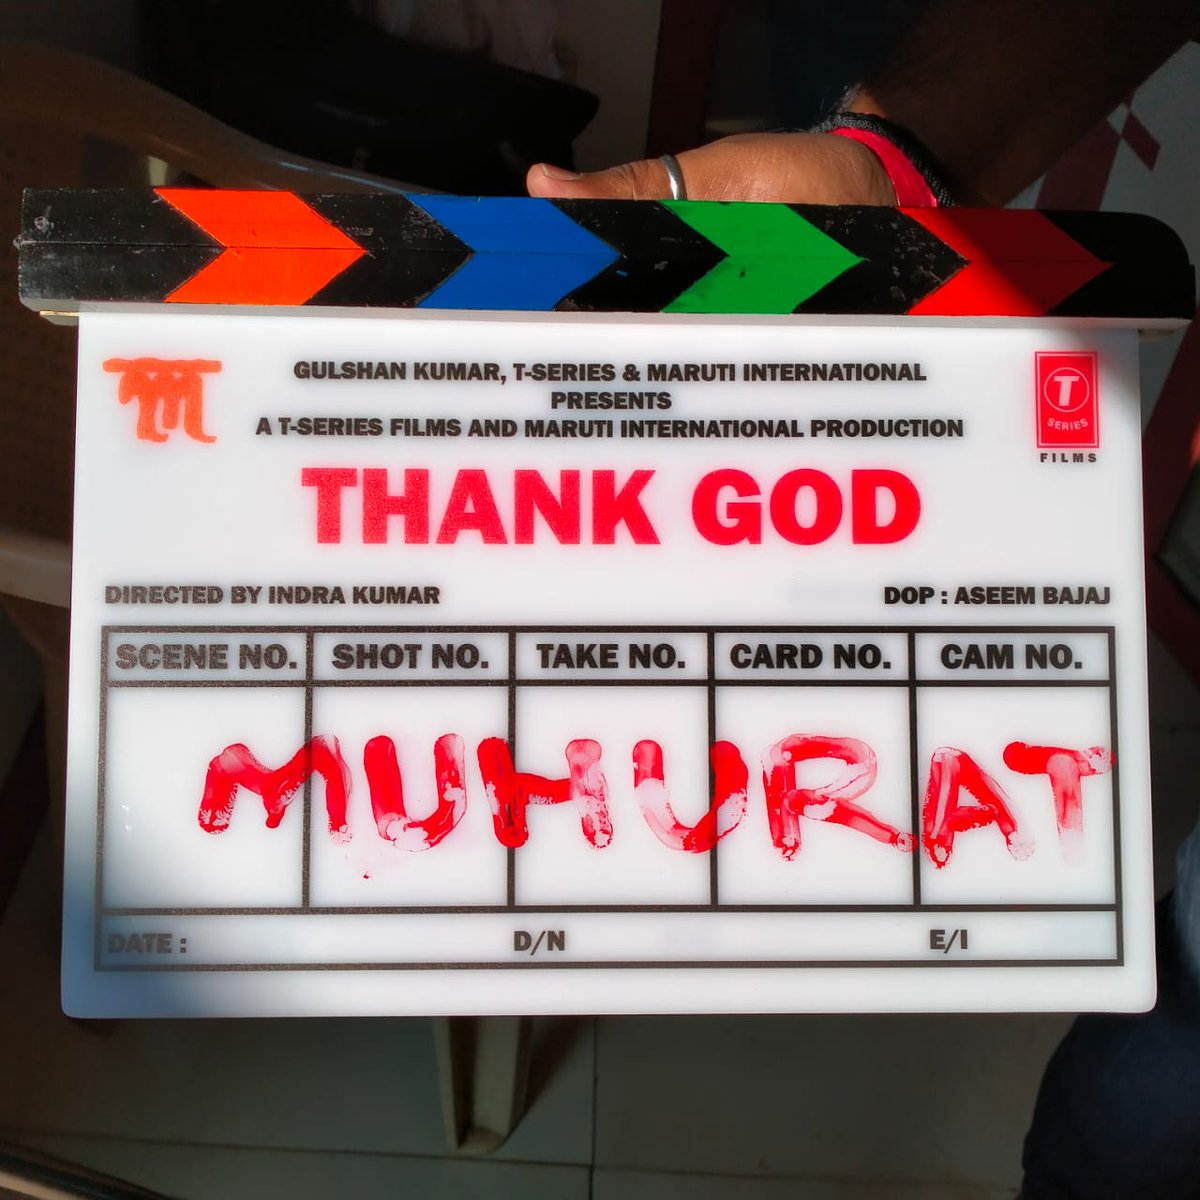 Lights. Camera. Action. 🎬🎥 The shoot for #ThankGod begins today in Mumbai!   @ajaydevgn @SidMalhotra @Rakulpreet @Indra_kumar_9 #BhushanKumar #KrishanKumar #AshokThakeria @SunirKheterpal @DeepakMukut @anandpandit63 #MarkandAdhikari #YashShah @TSeries #MarutiInternational